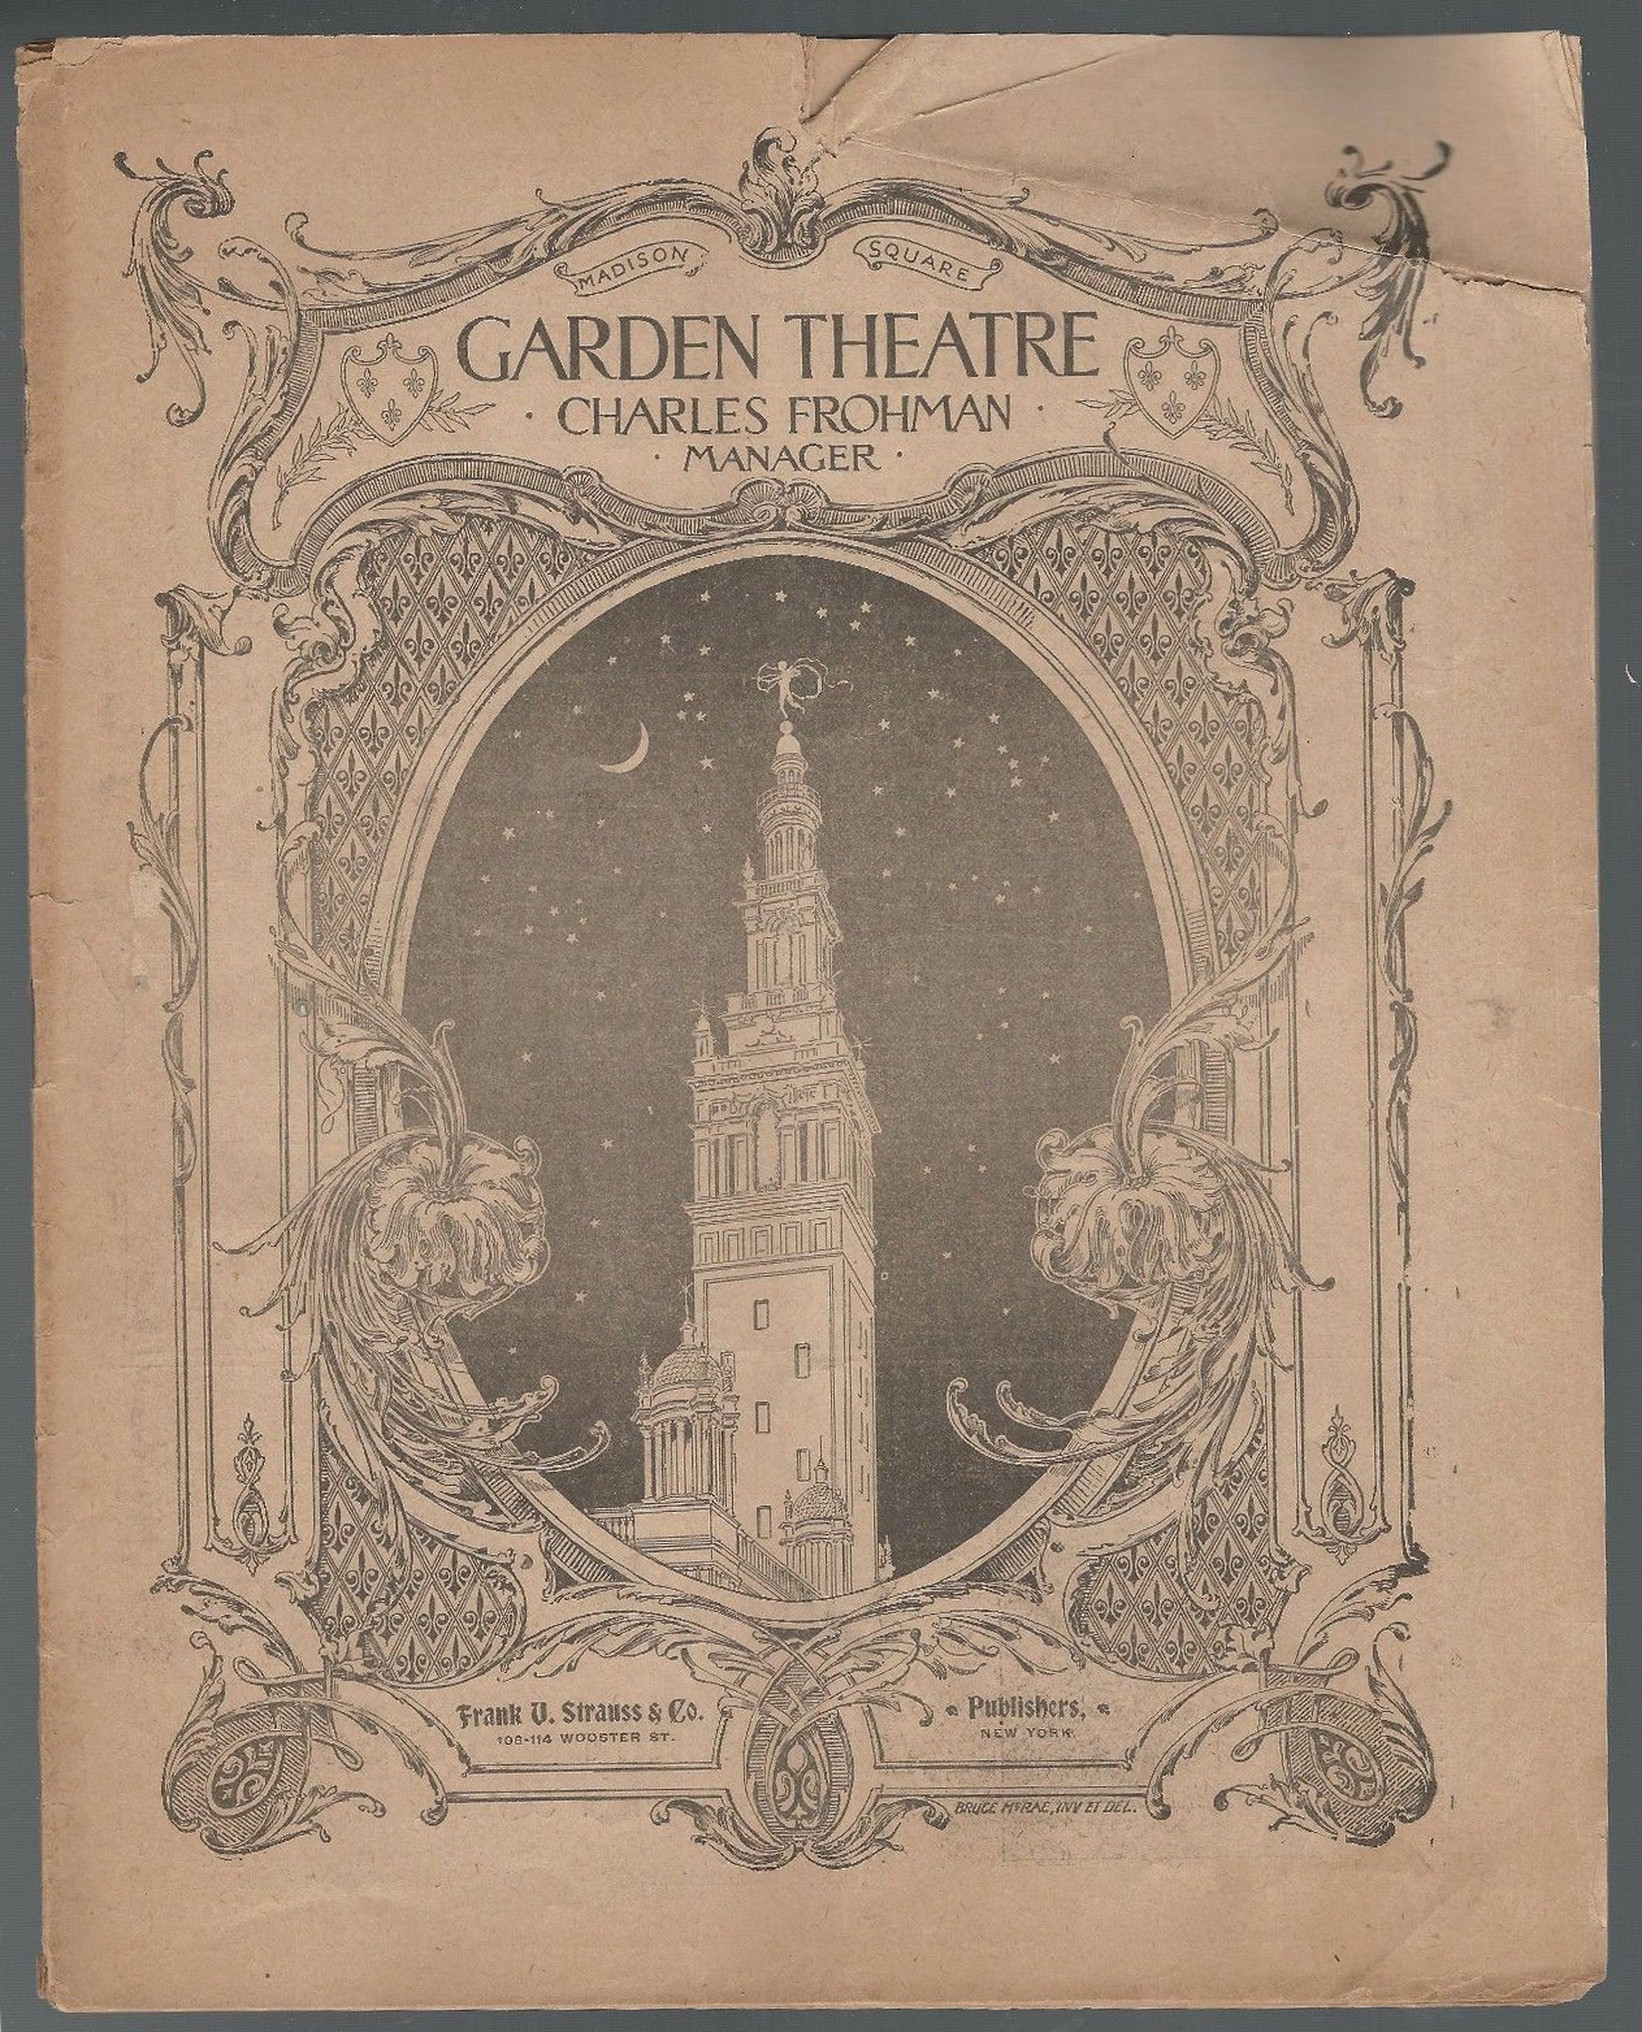 Who Was Appearing At The Madison Square Garden Theatre 116 Years Ago Today